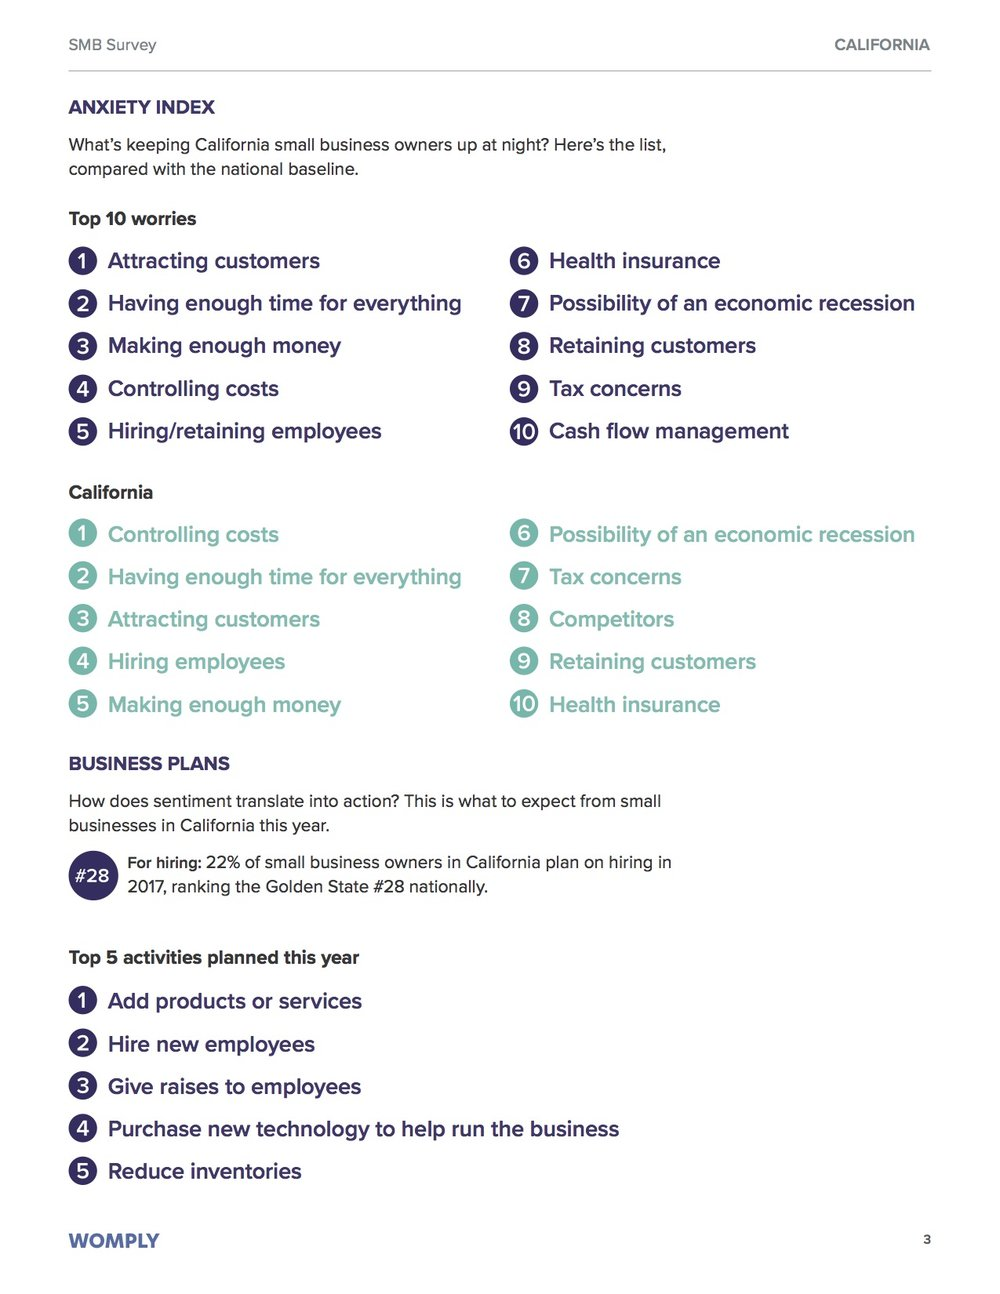 california-small-business-worries-concerns-2017